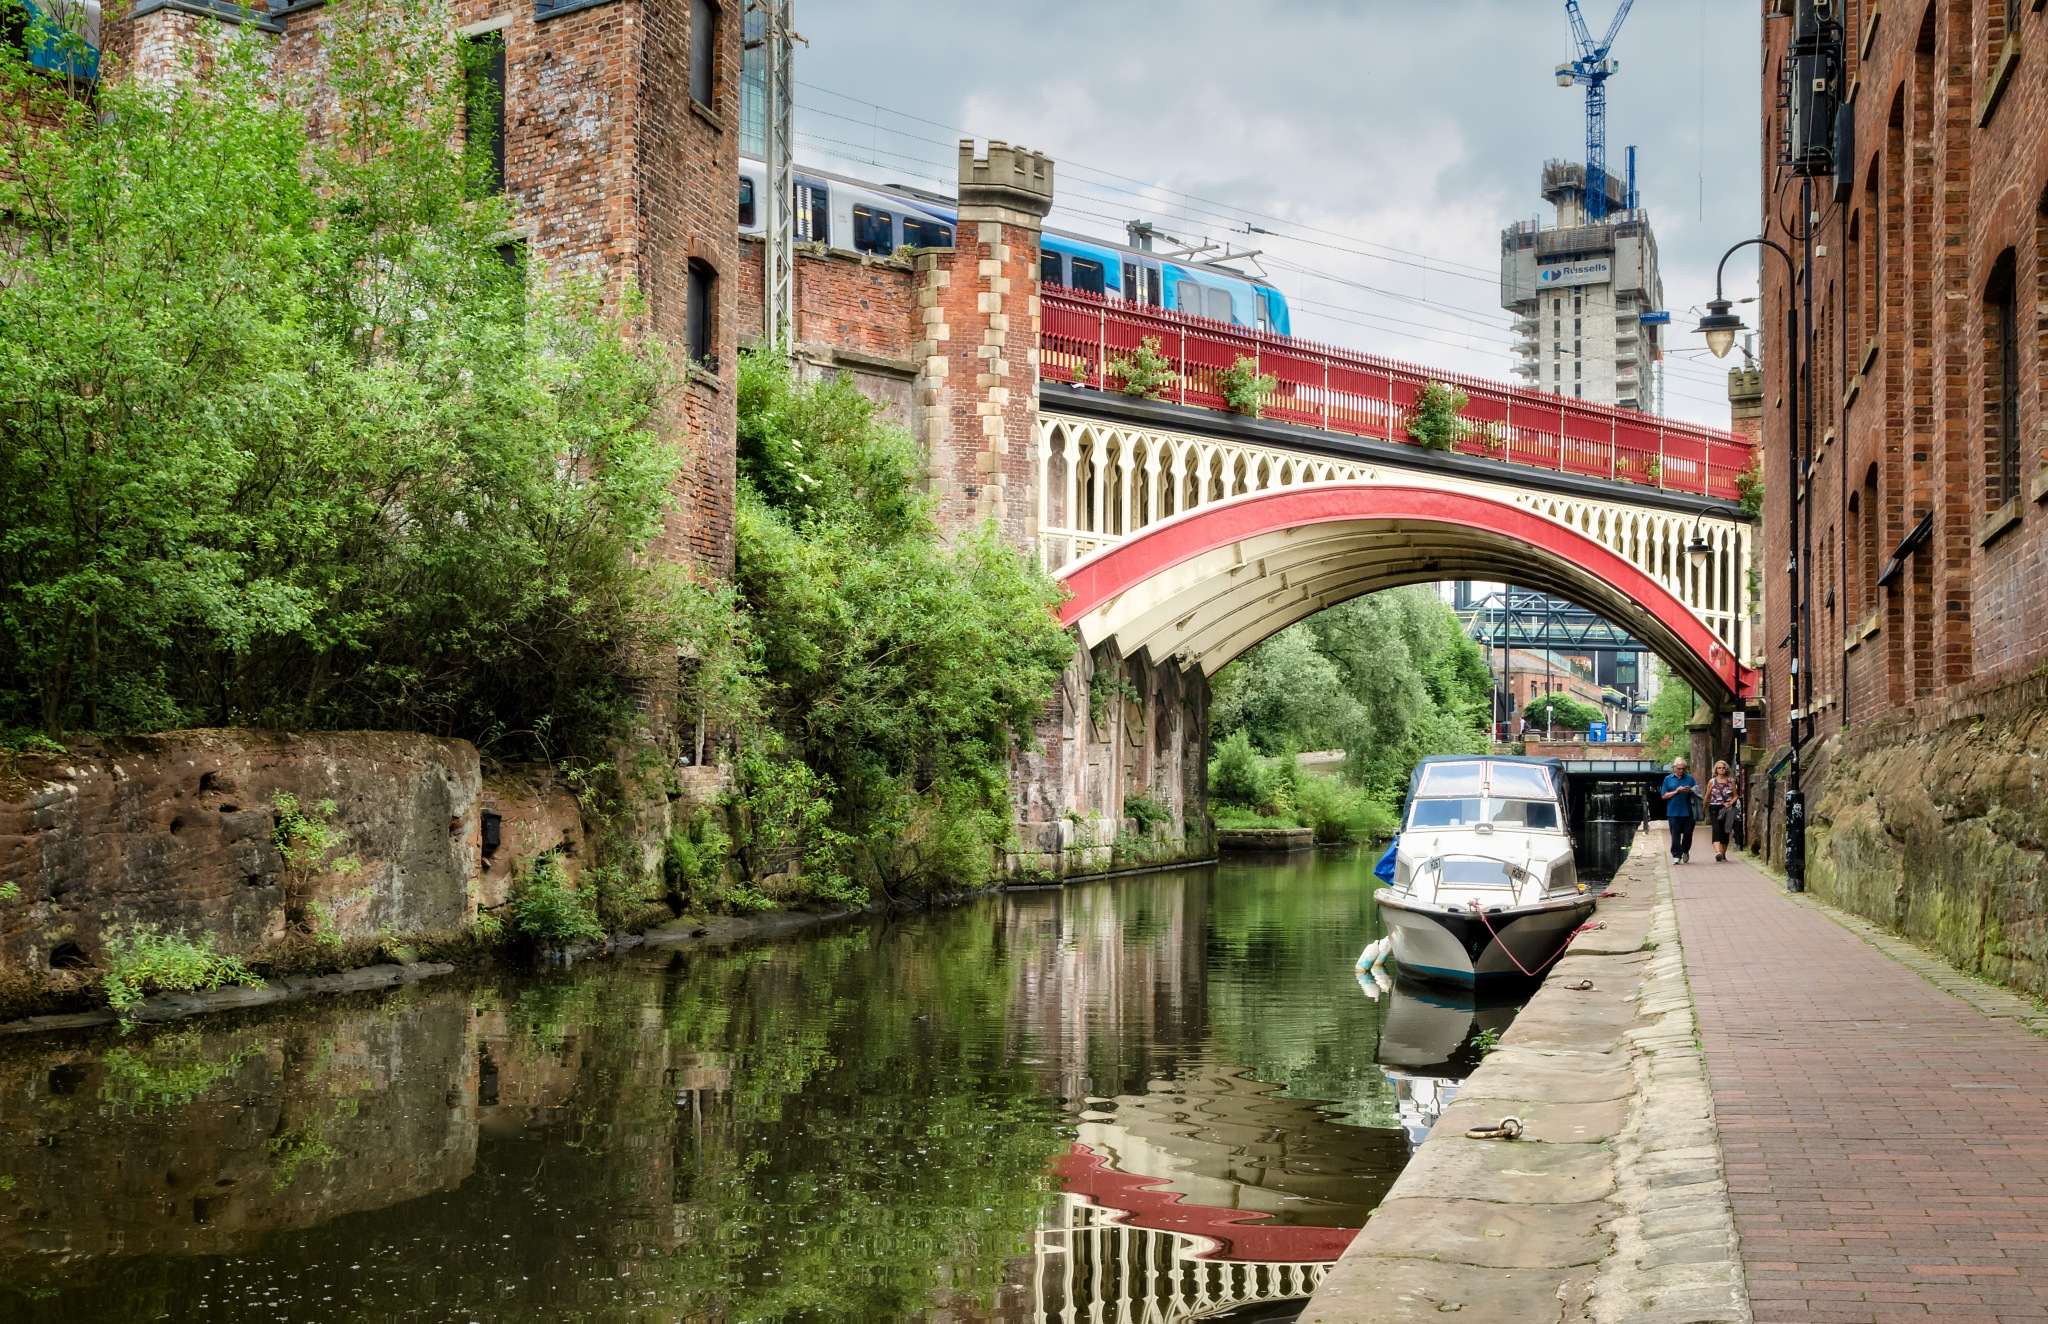 Reflections and railways by Keith Page